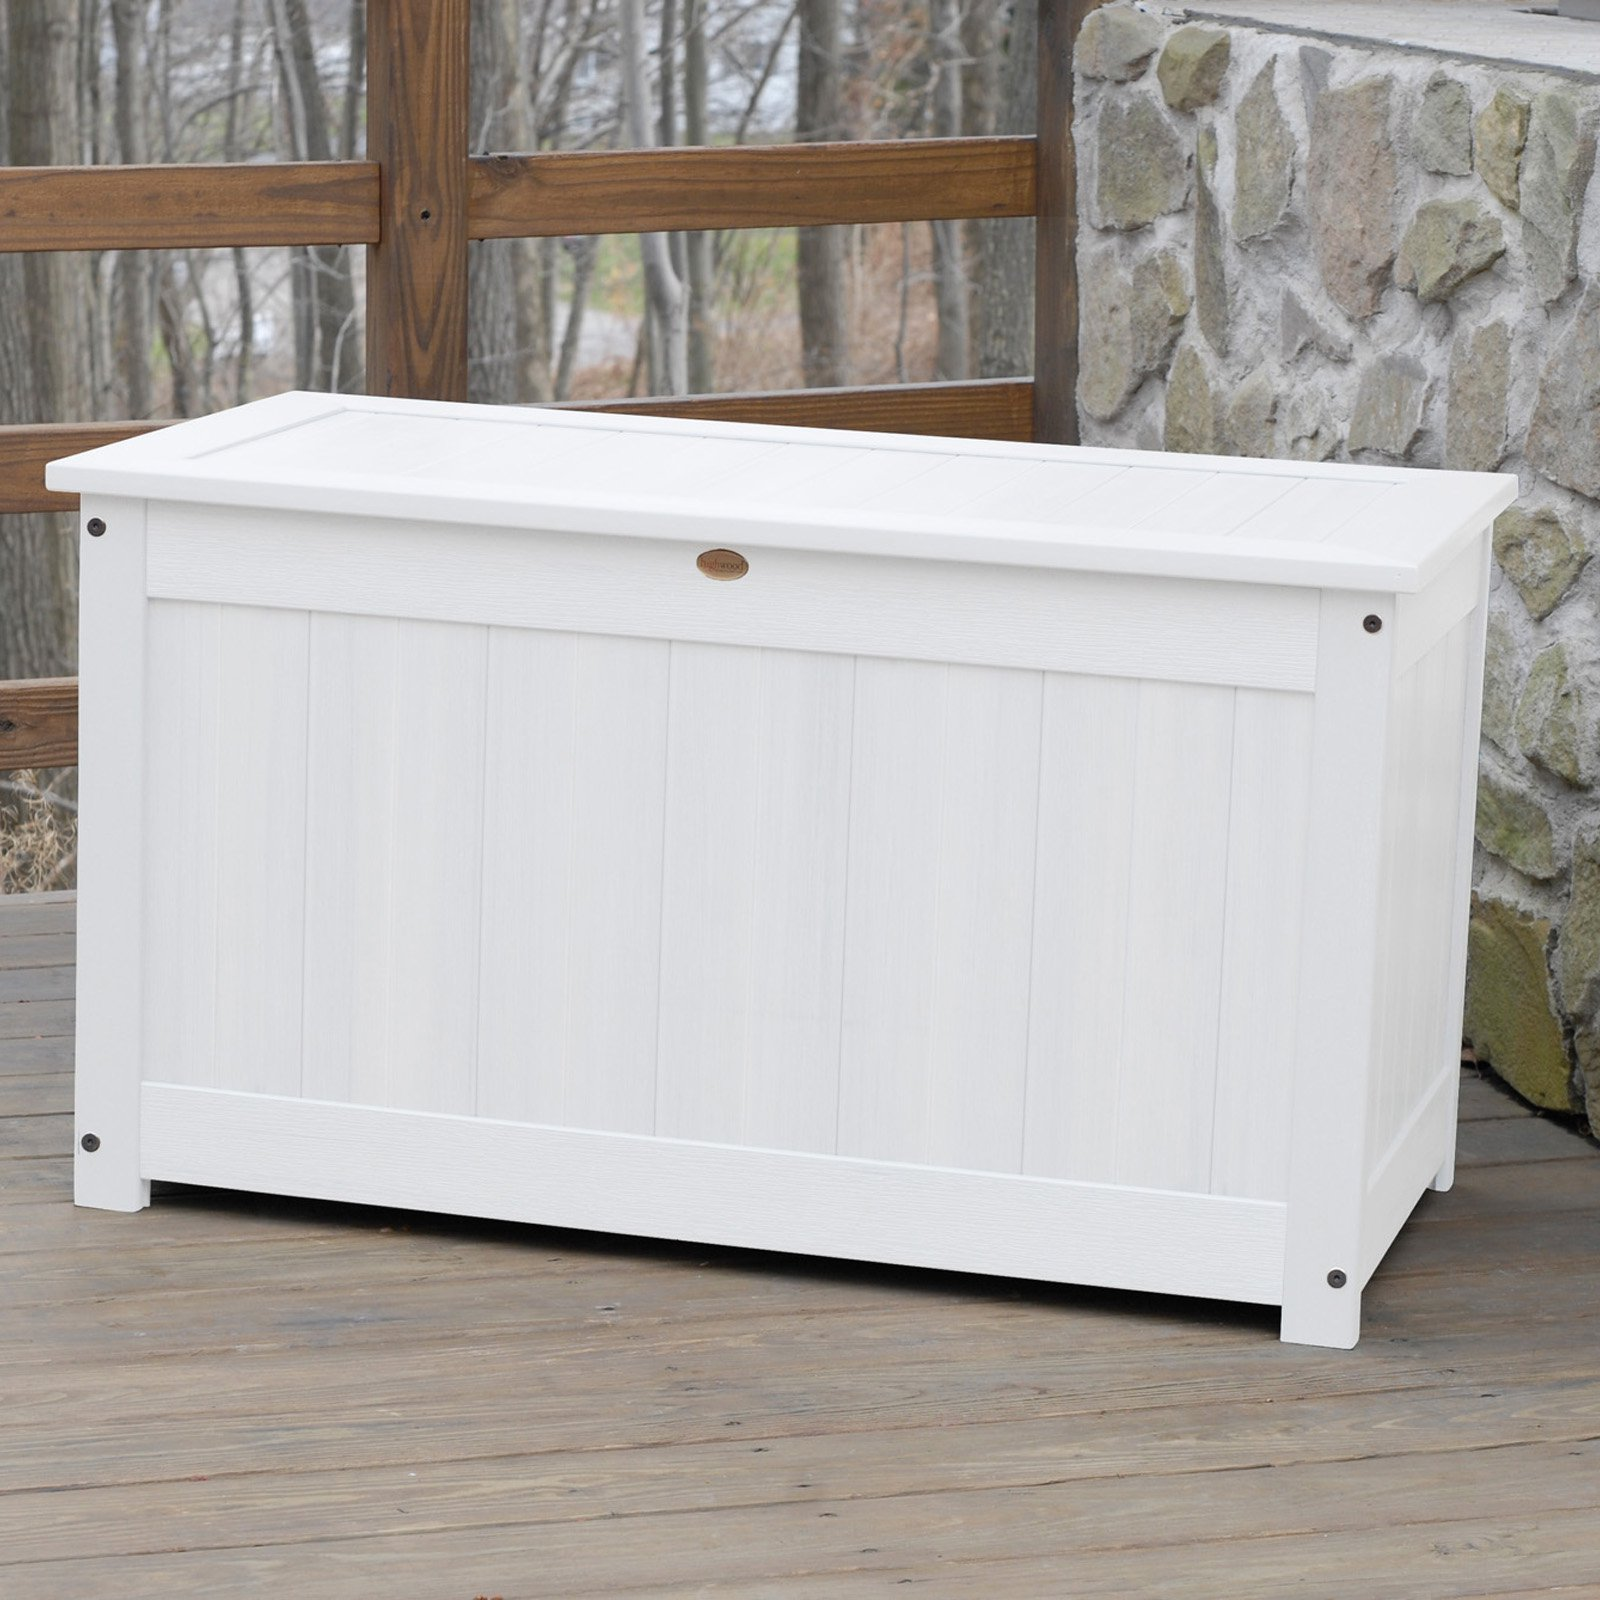 highwood® 42 in. Large Recycled Plastic 100-Gallon Deck Storage Box